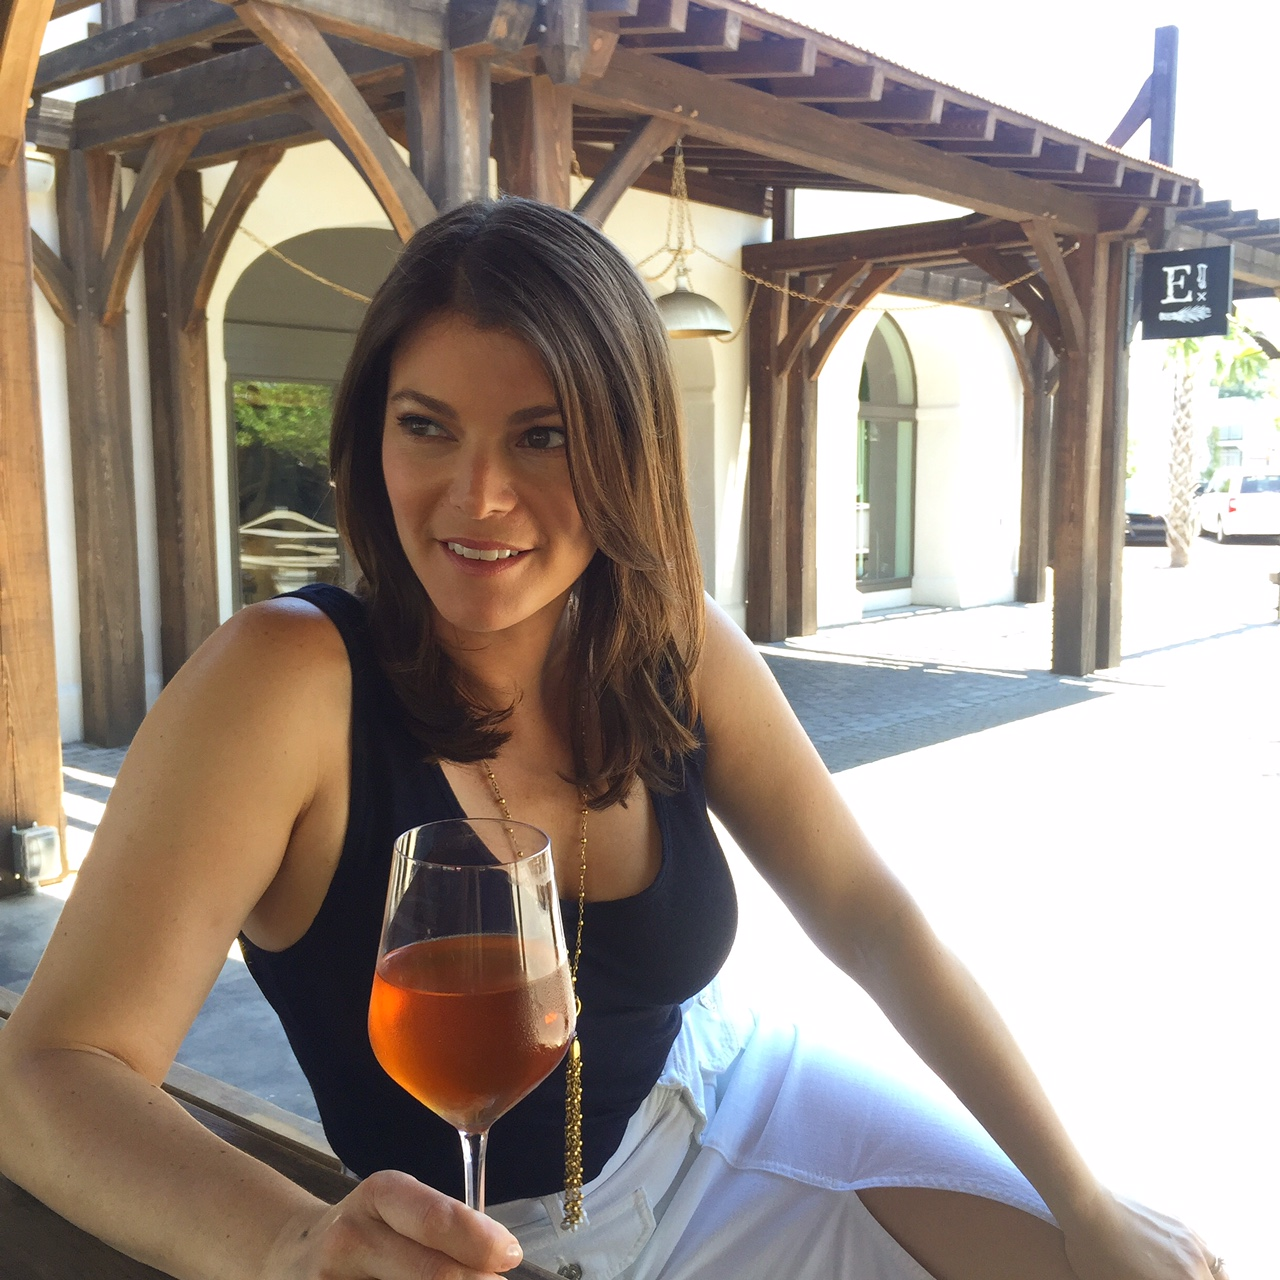 gail simmons from top chef holds glass of wine